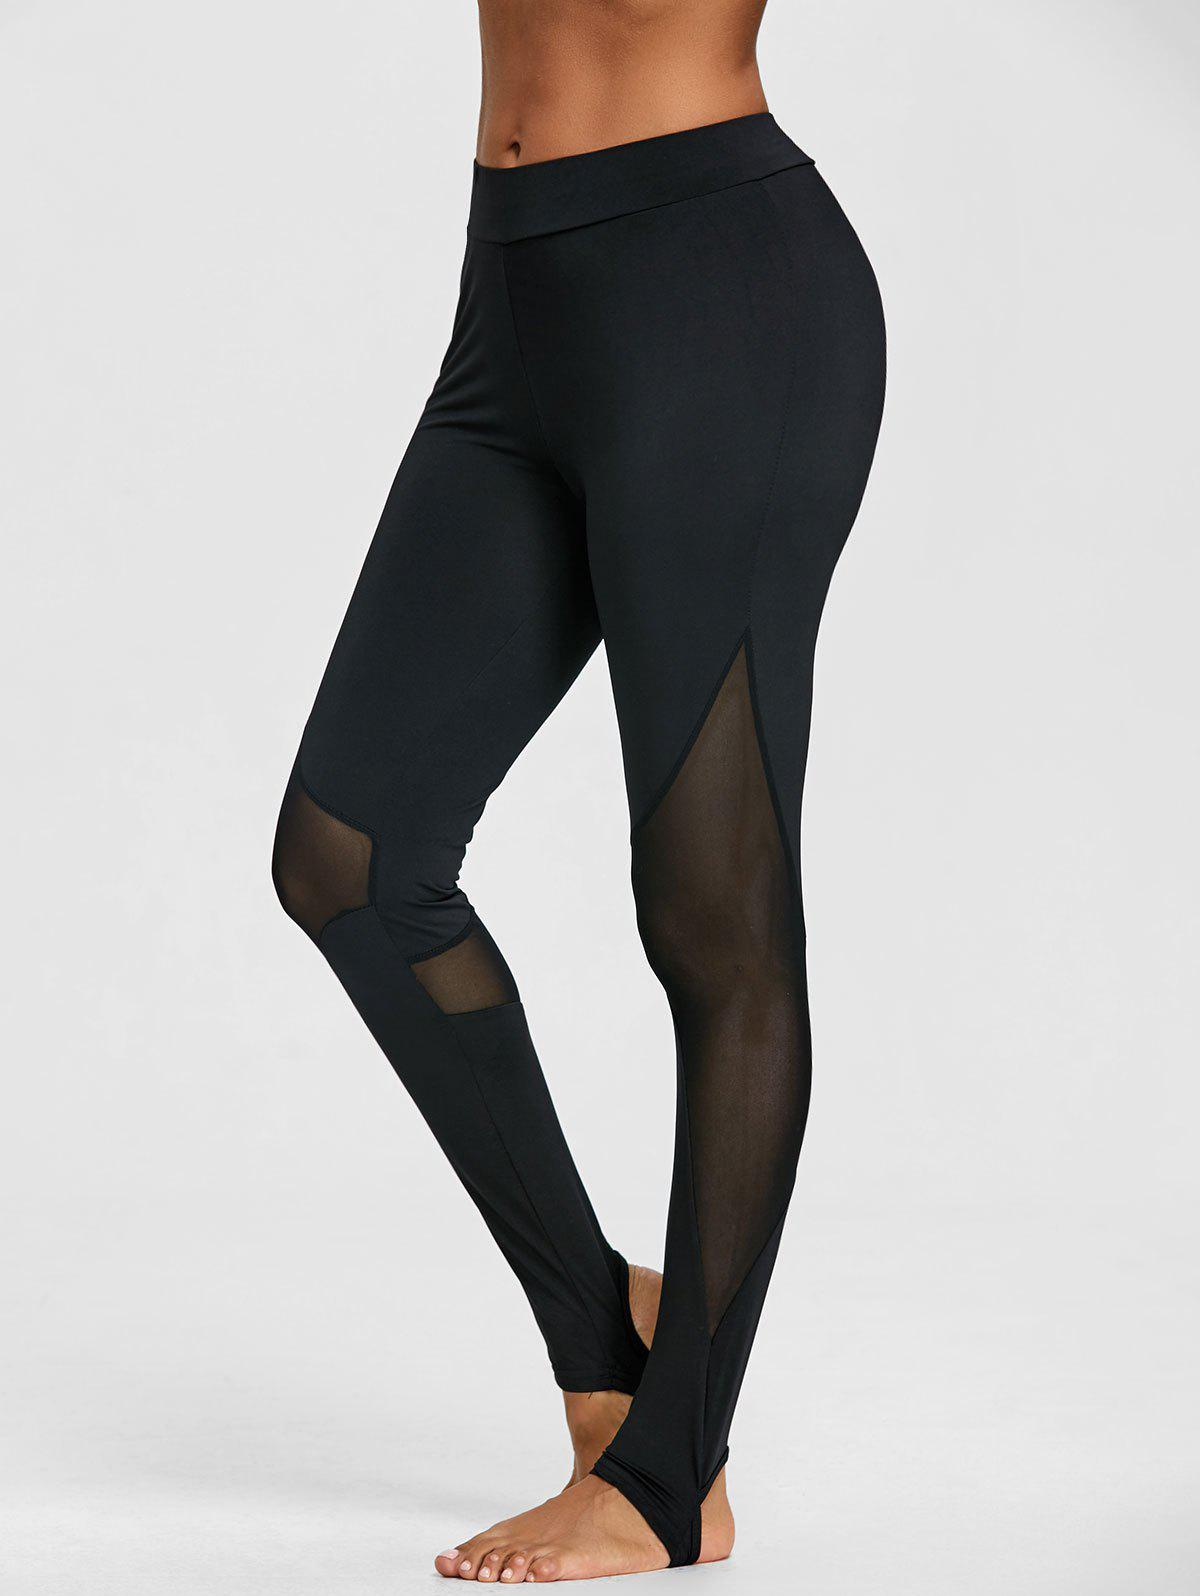 Sheer Mesh Panel Gym Stirrup Leggings - BLACK XL